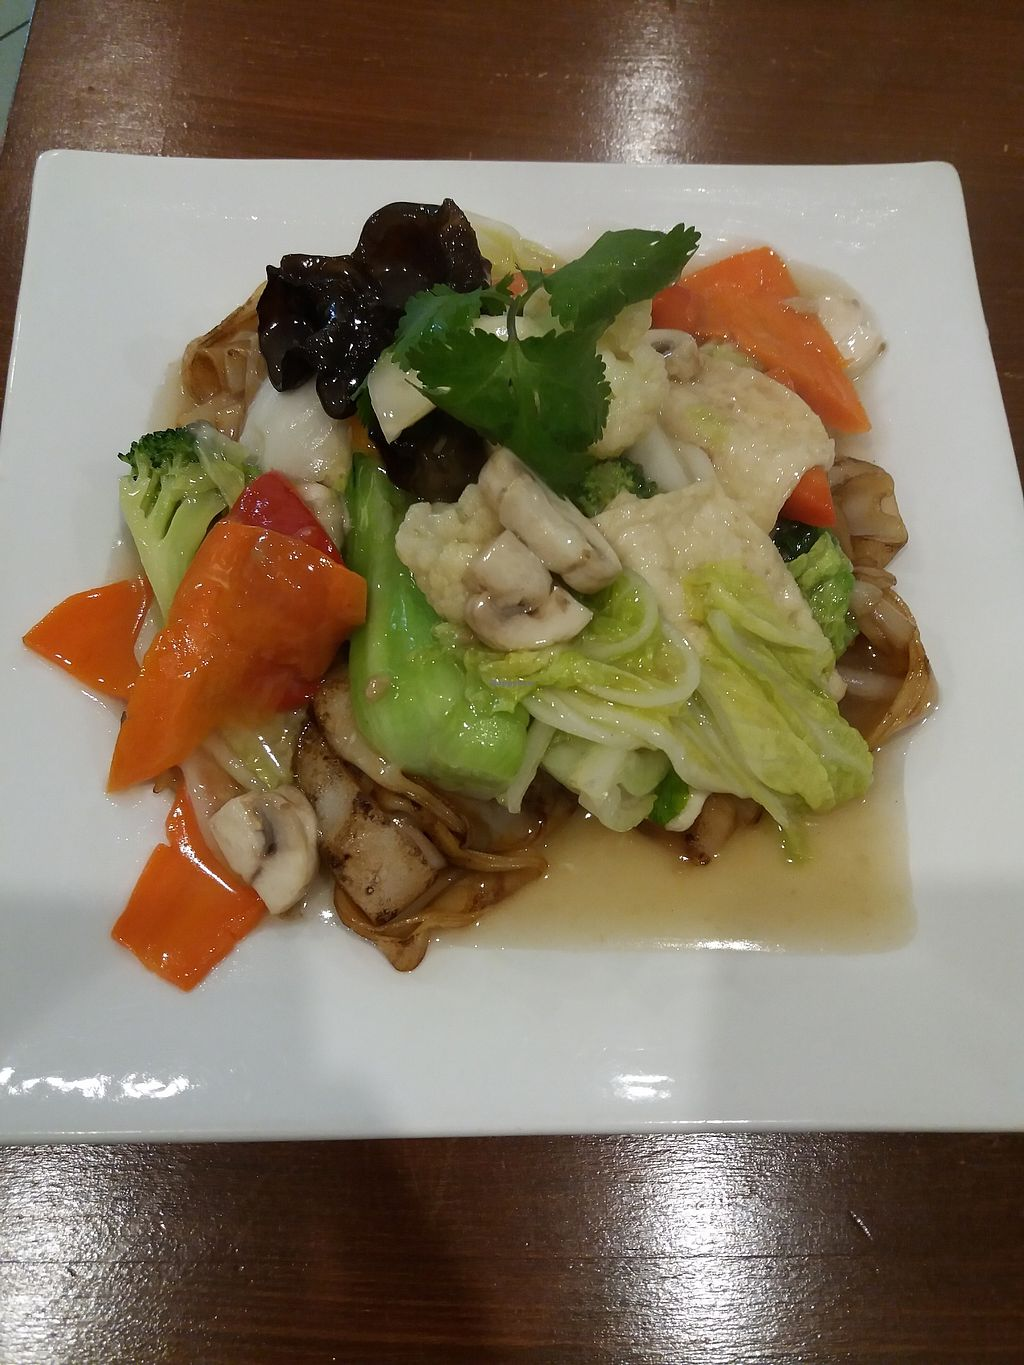 "Photo of Cay Da Da  by <a href=""/members/profile/veganvirtues"">veganvirtues</a> <br/>Mixed veggies with noodles <br/> June 28, 2017  - <a href='/contact/abuse/image/68235/274214'>Report</a>"